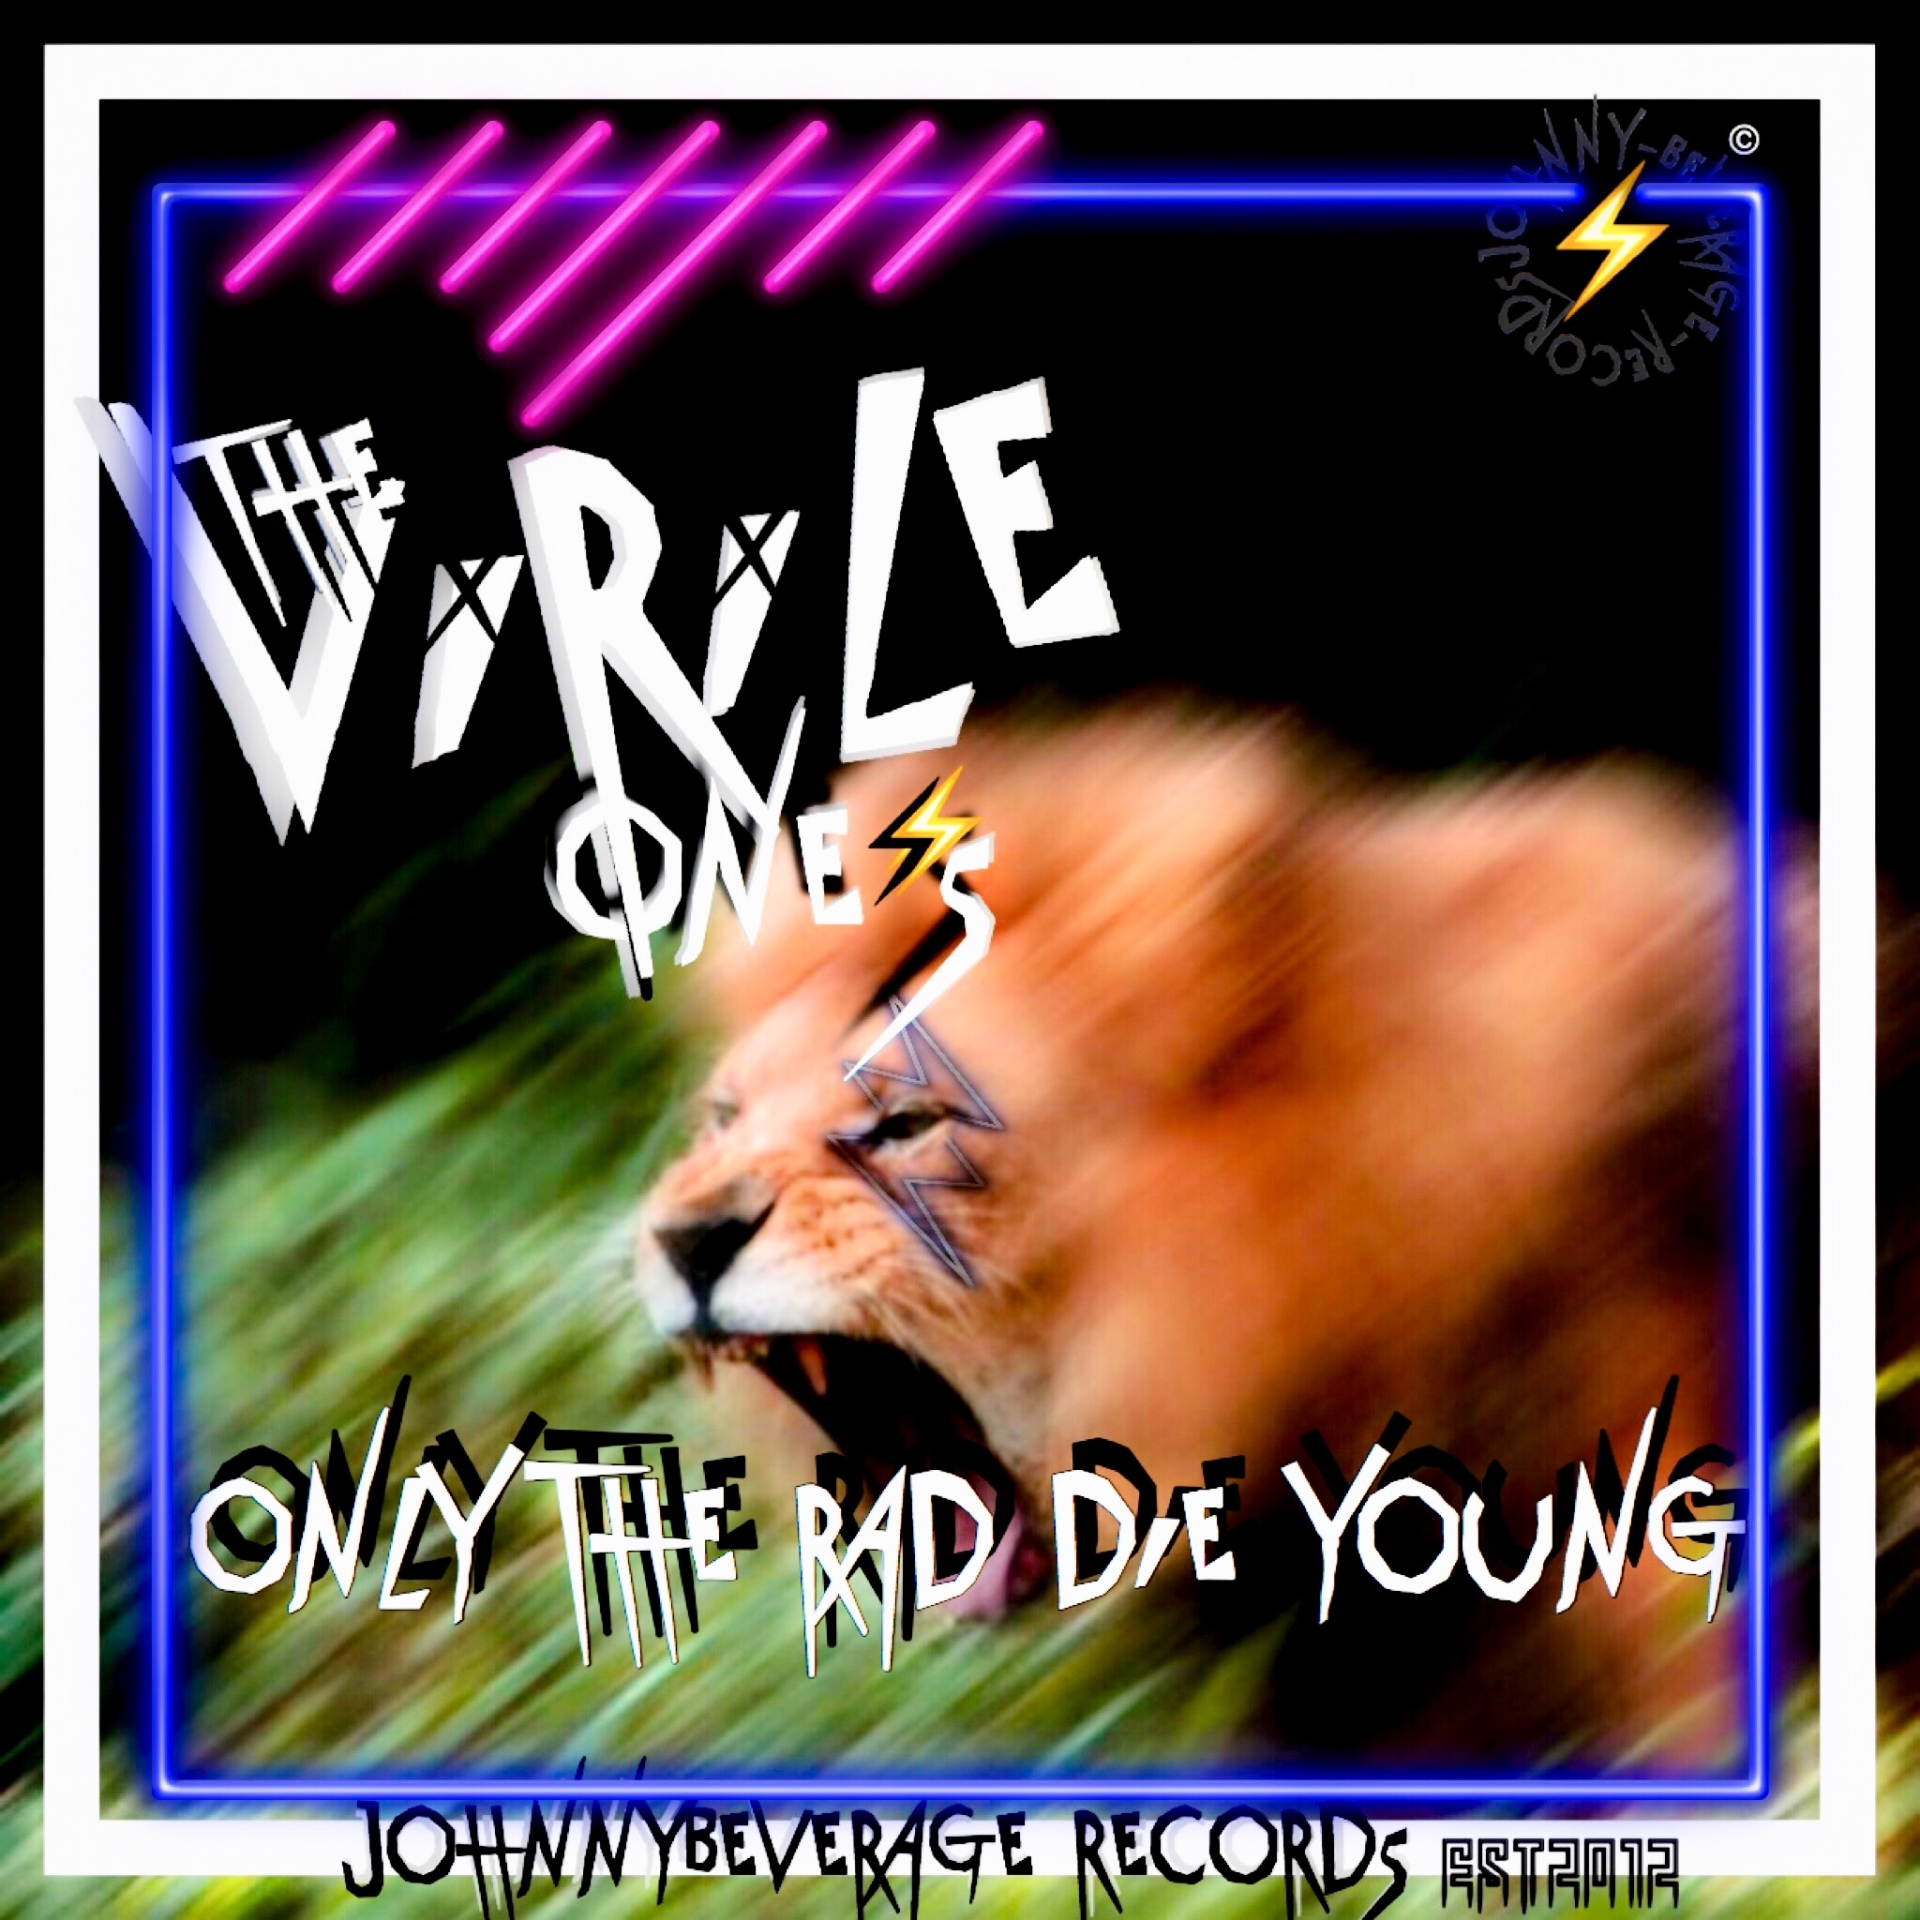 The Virile One's - Only The Rad Die Young!!!